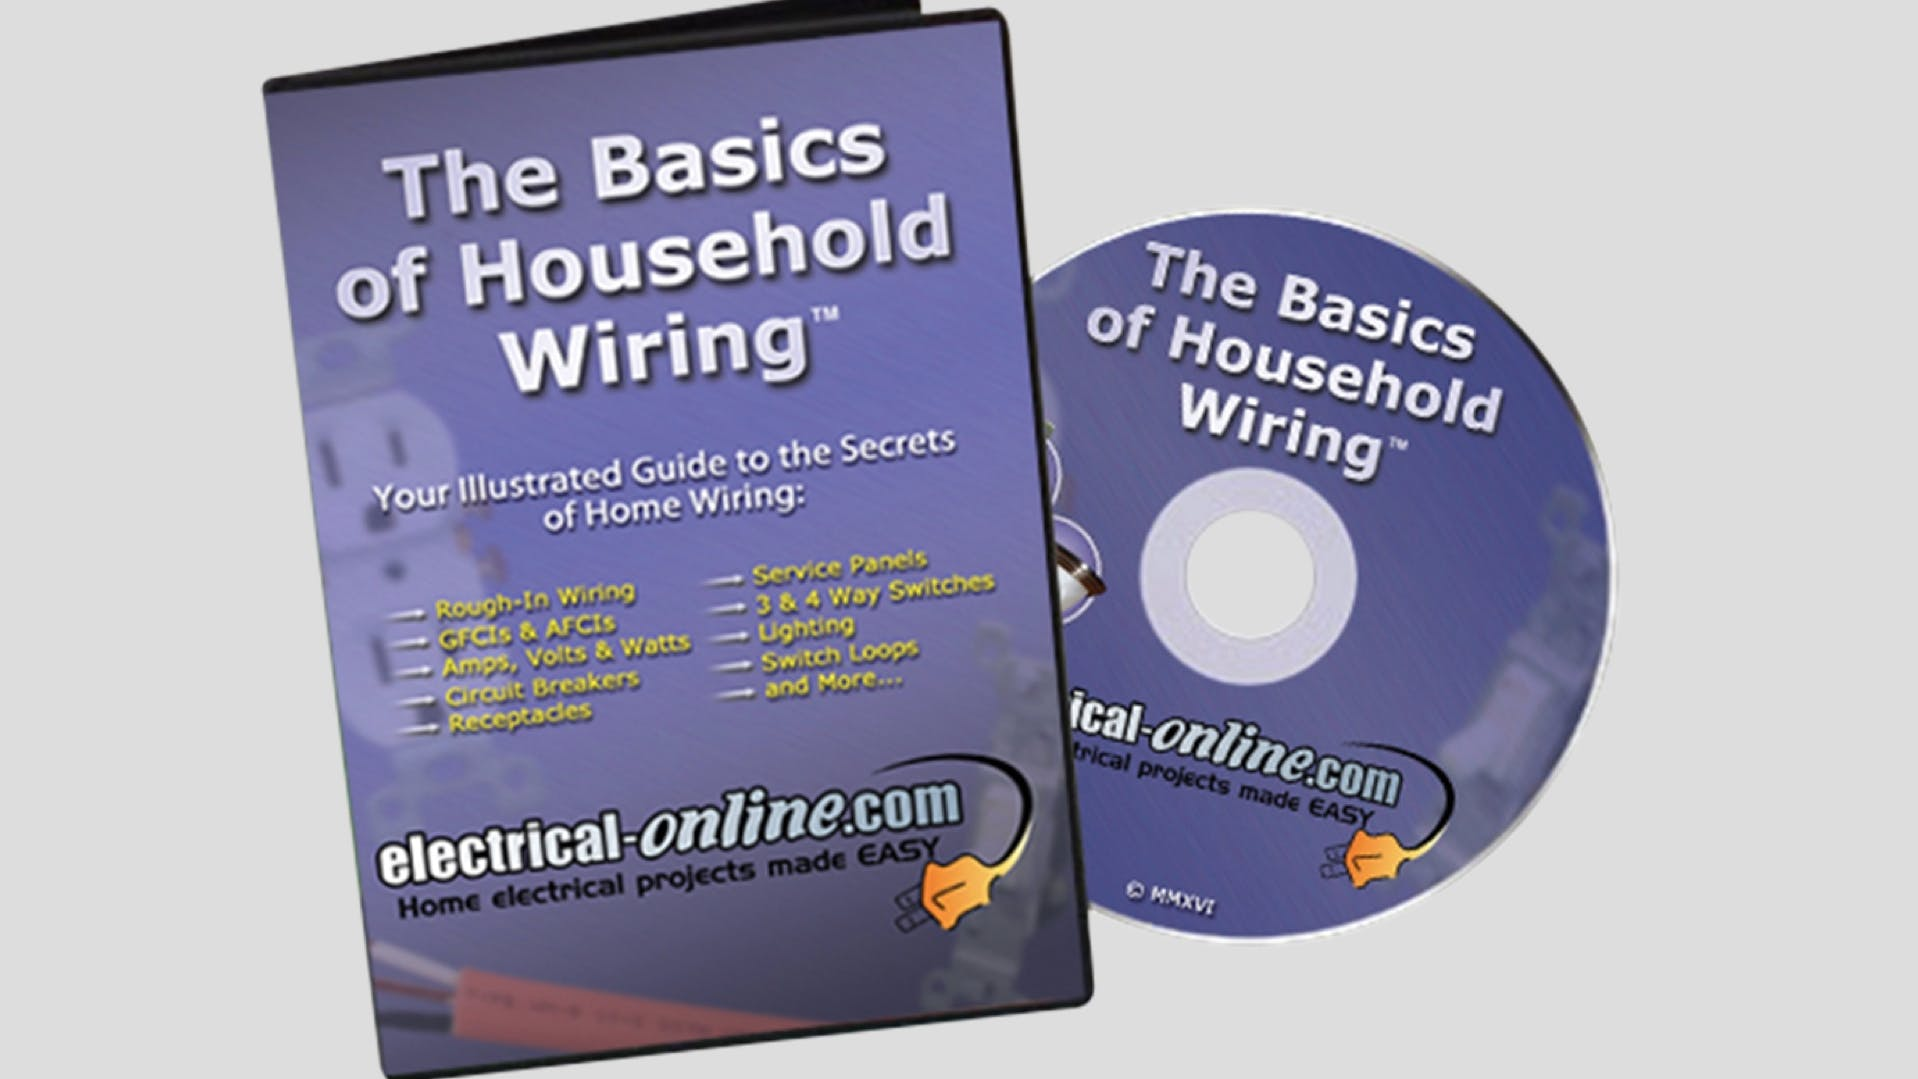 Electrical-online – The Basics of Household Wiring